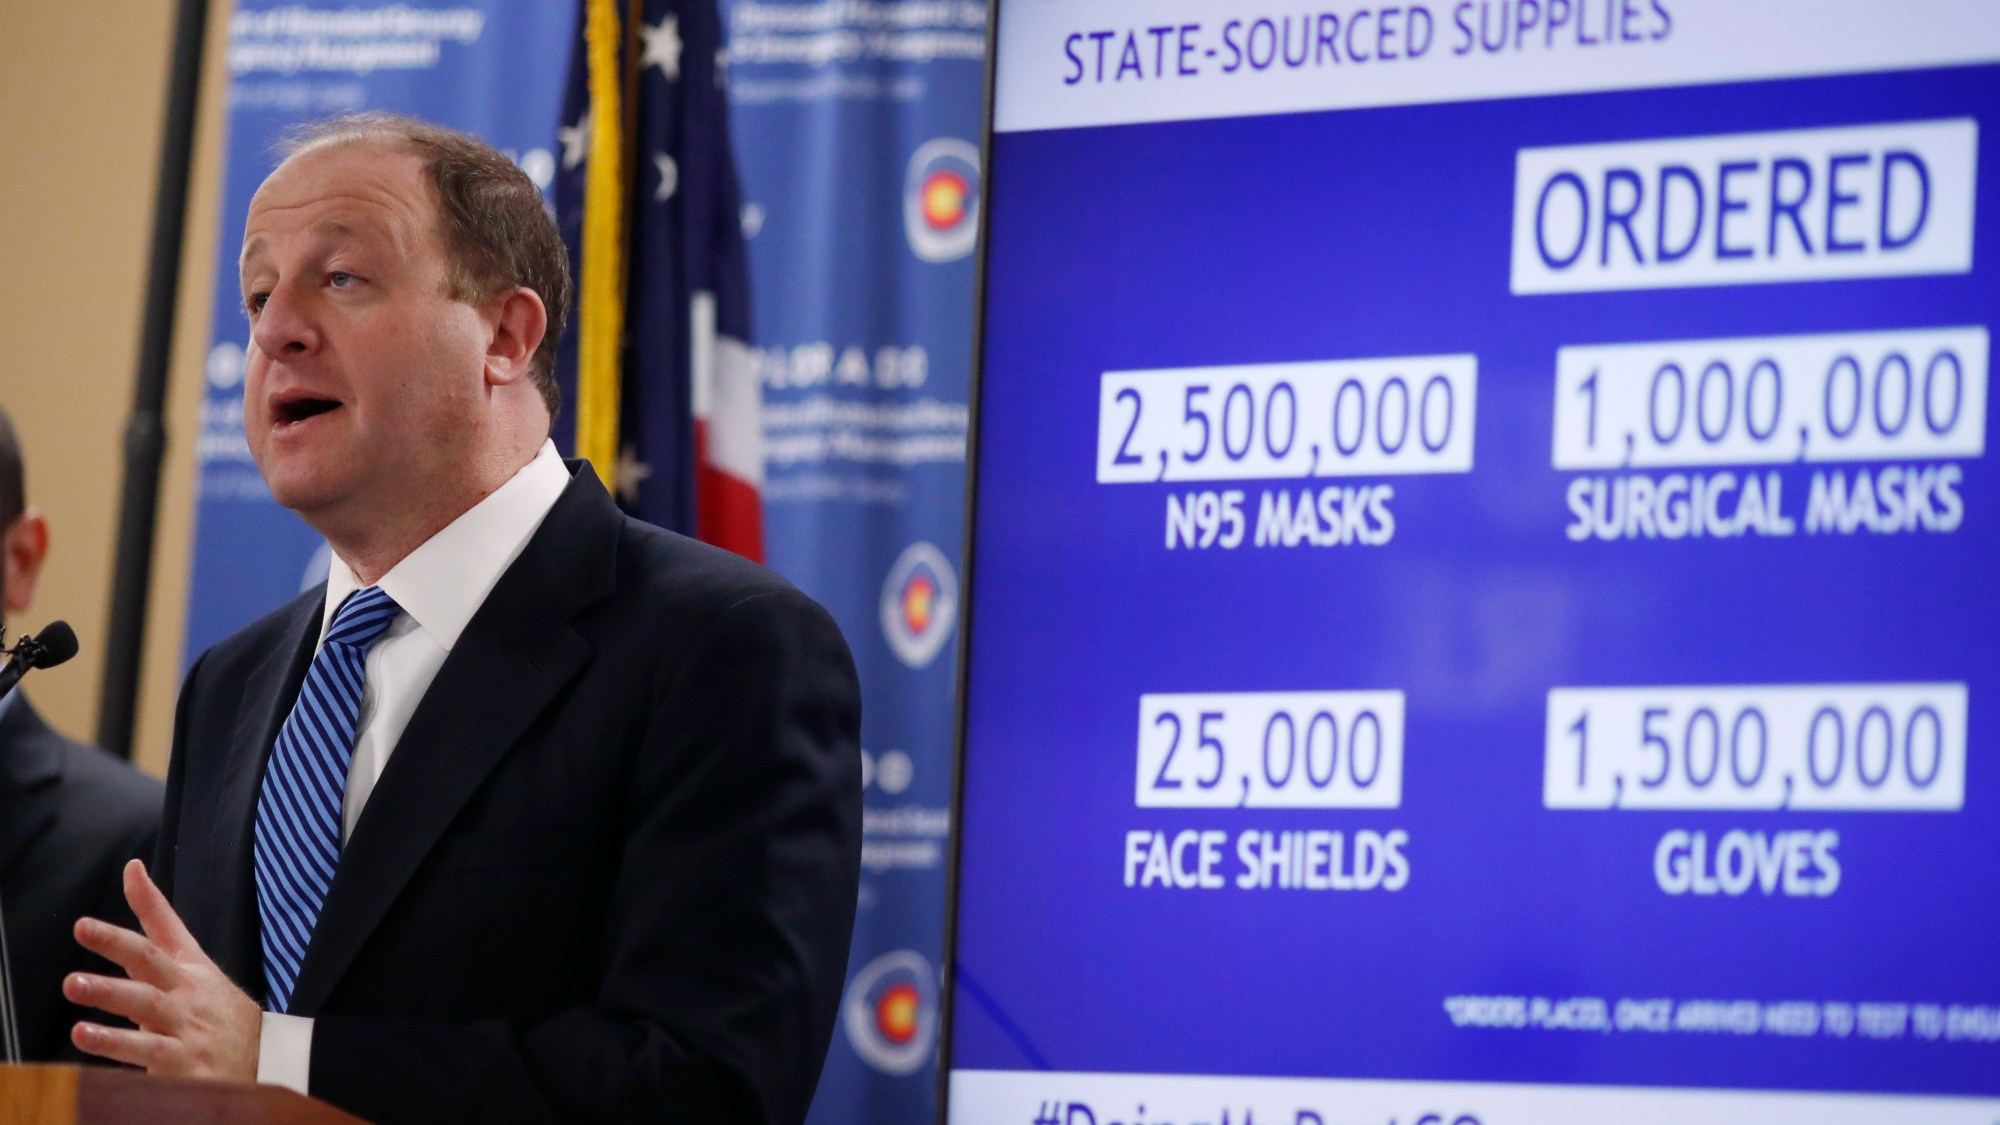 Colorado Gov. Jared Polis makes a point during a news conference as a statewide stay-at-home order remains in effect in an effort to reduce the spread of the new coronavirus Wednesday, April 1, 2020, in Centennial, Colo. (AP Photo/David Zalubowski)